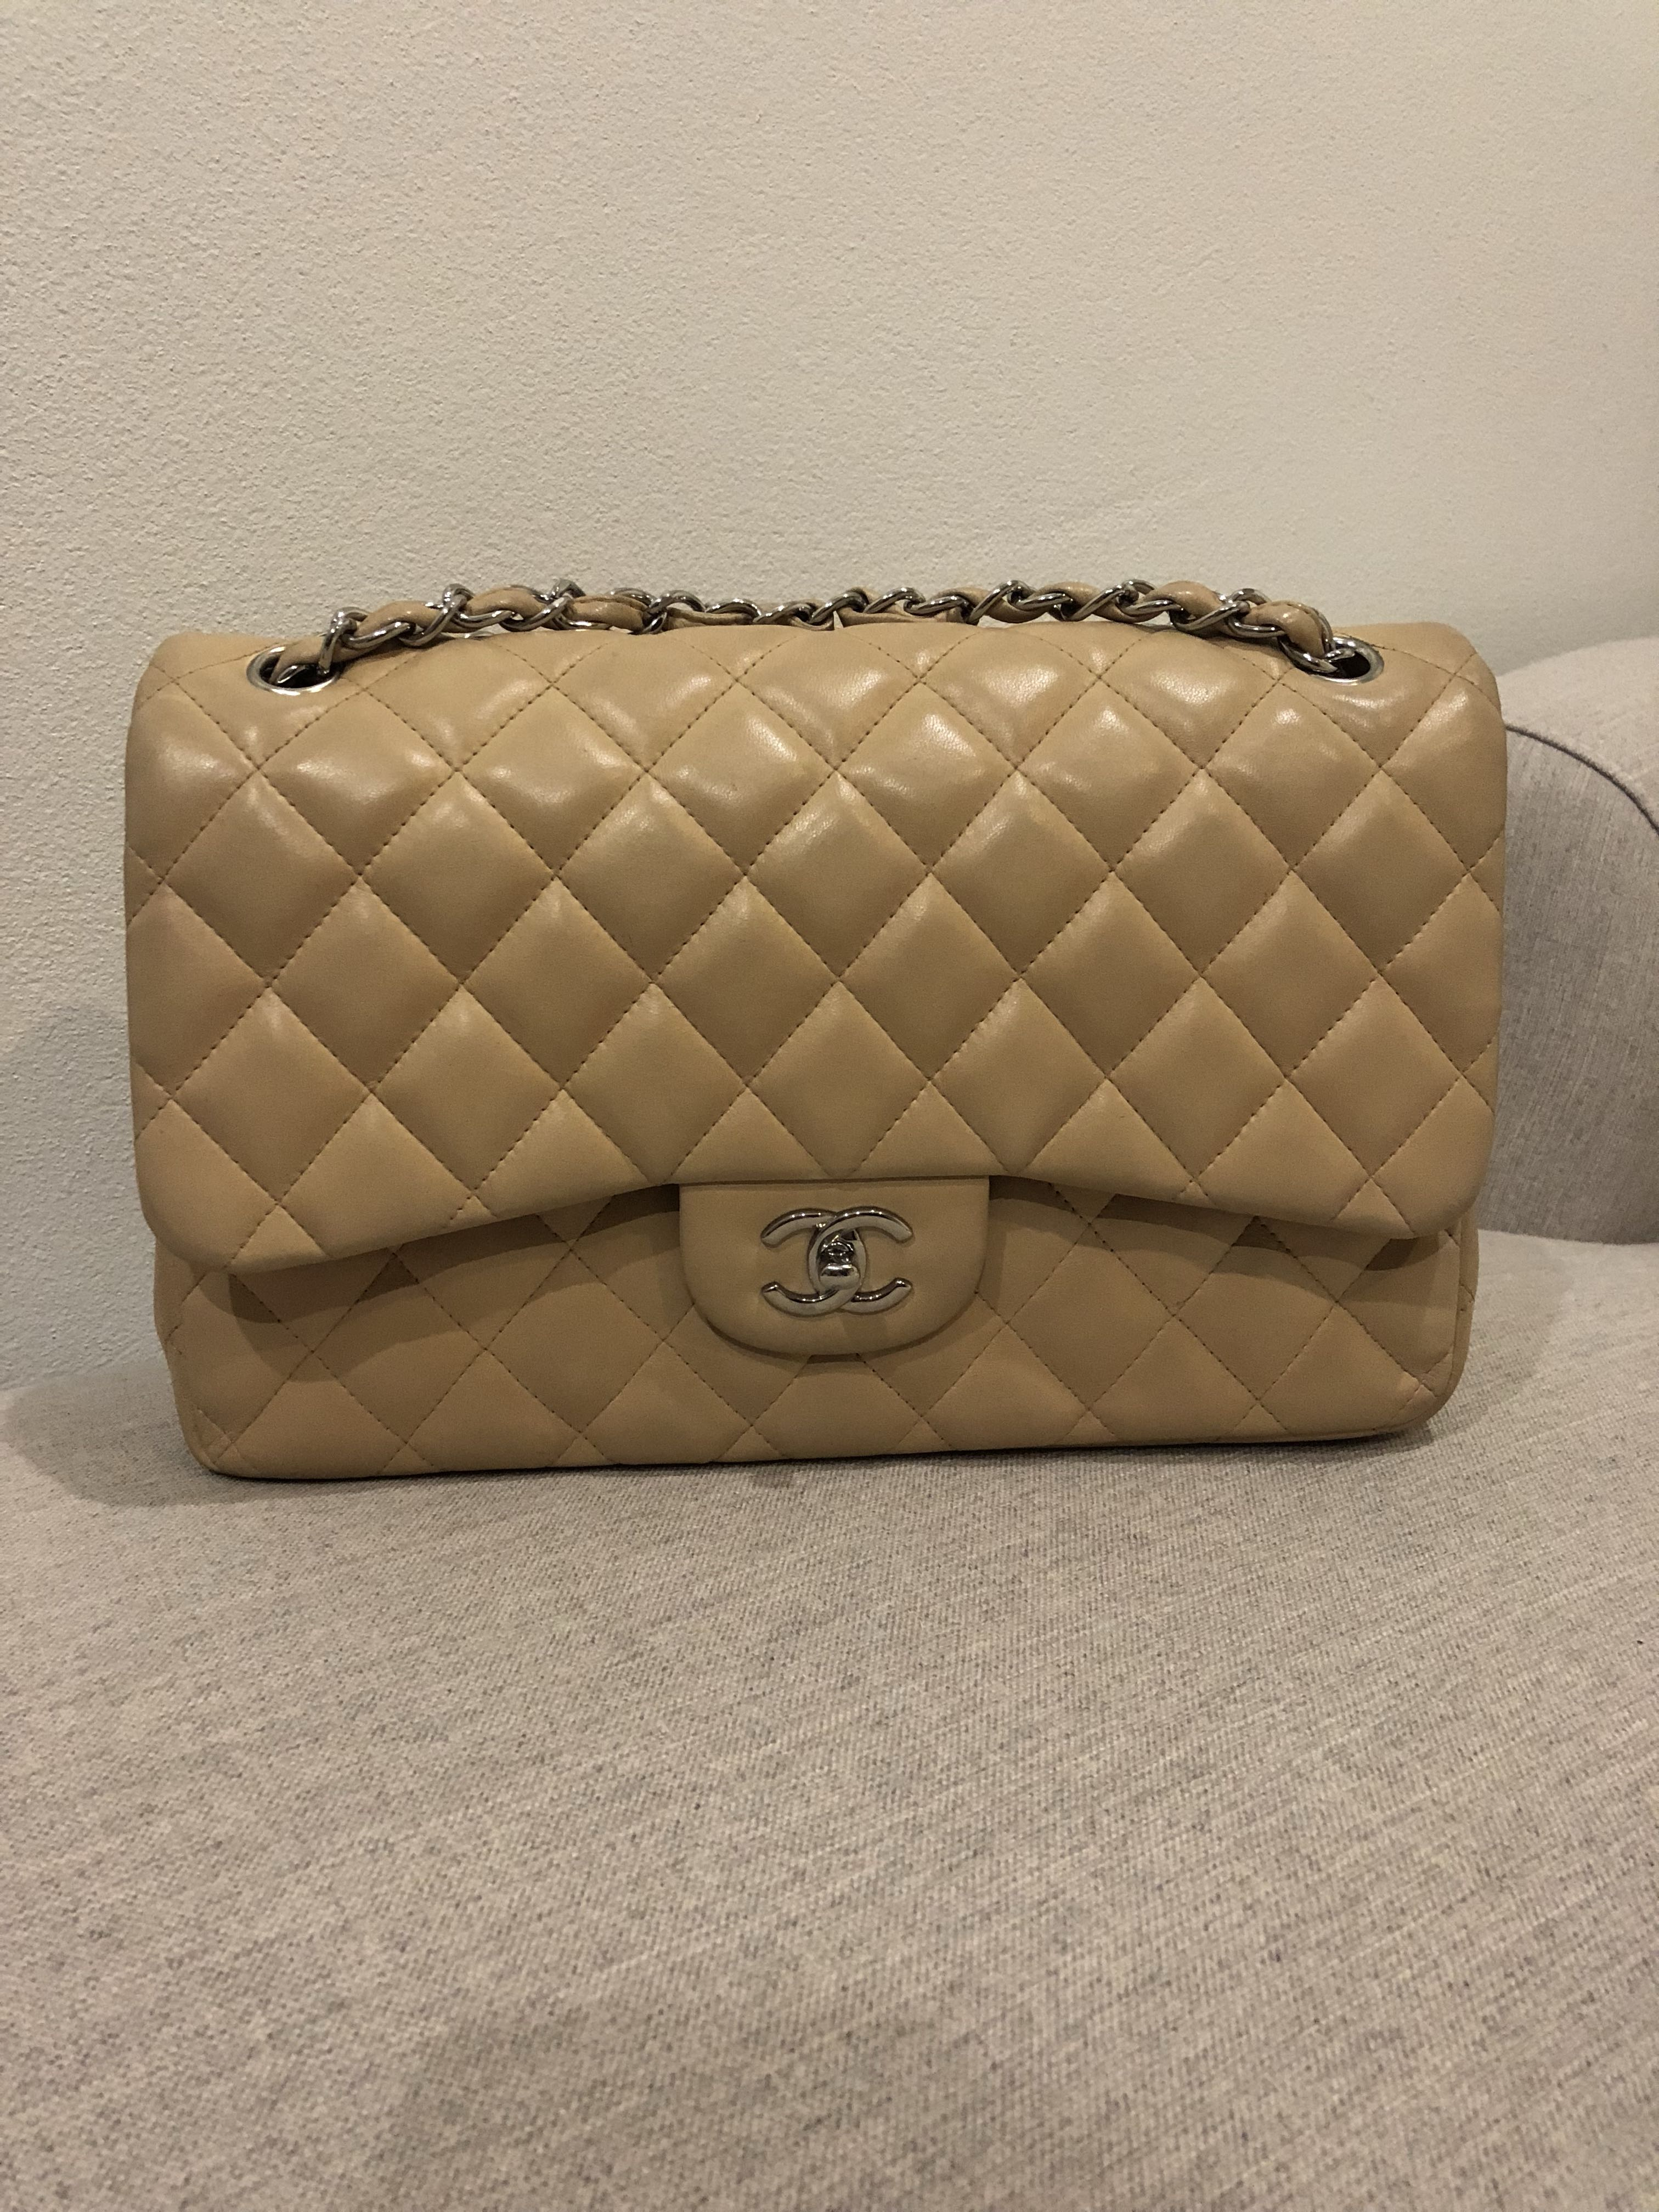 ac4723f82e98 Authentic Chanel Beige Lambskin Quilted Double Flap Jumbo Bag ...